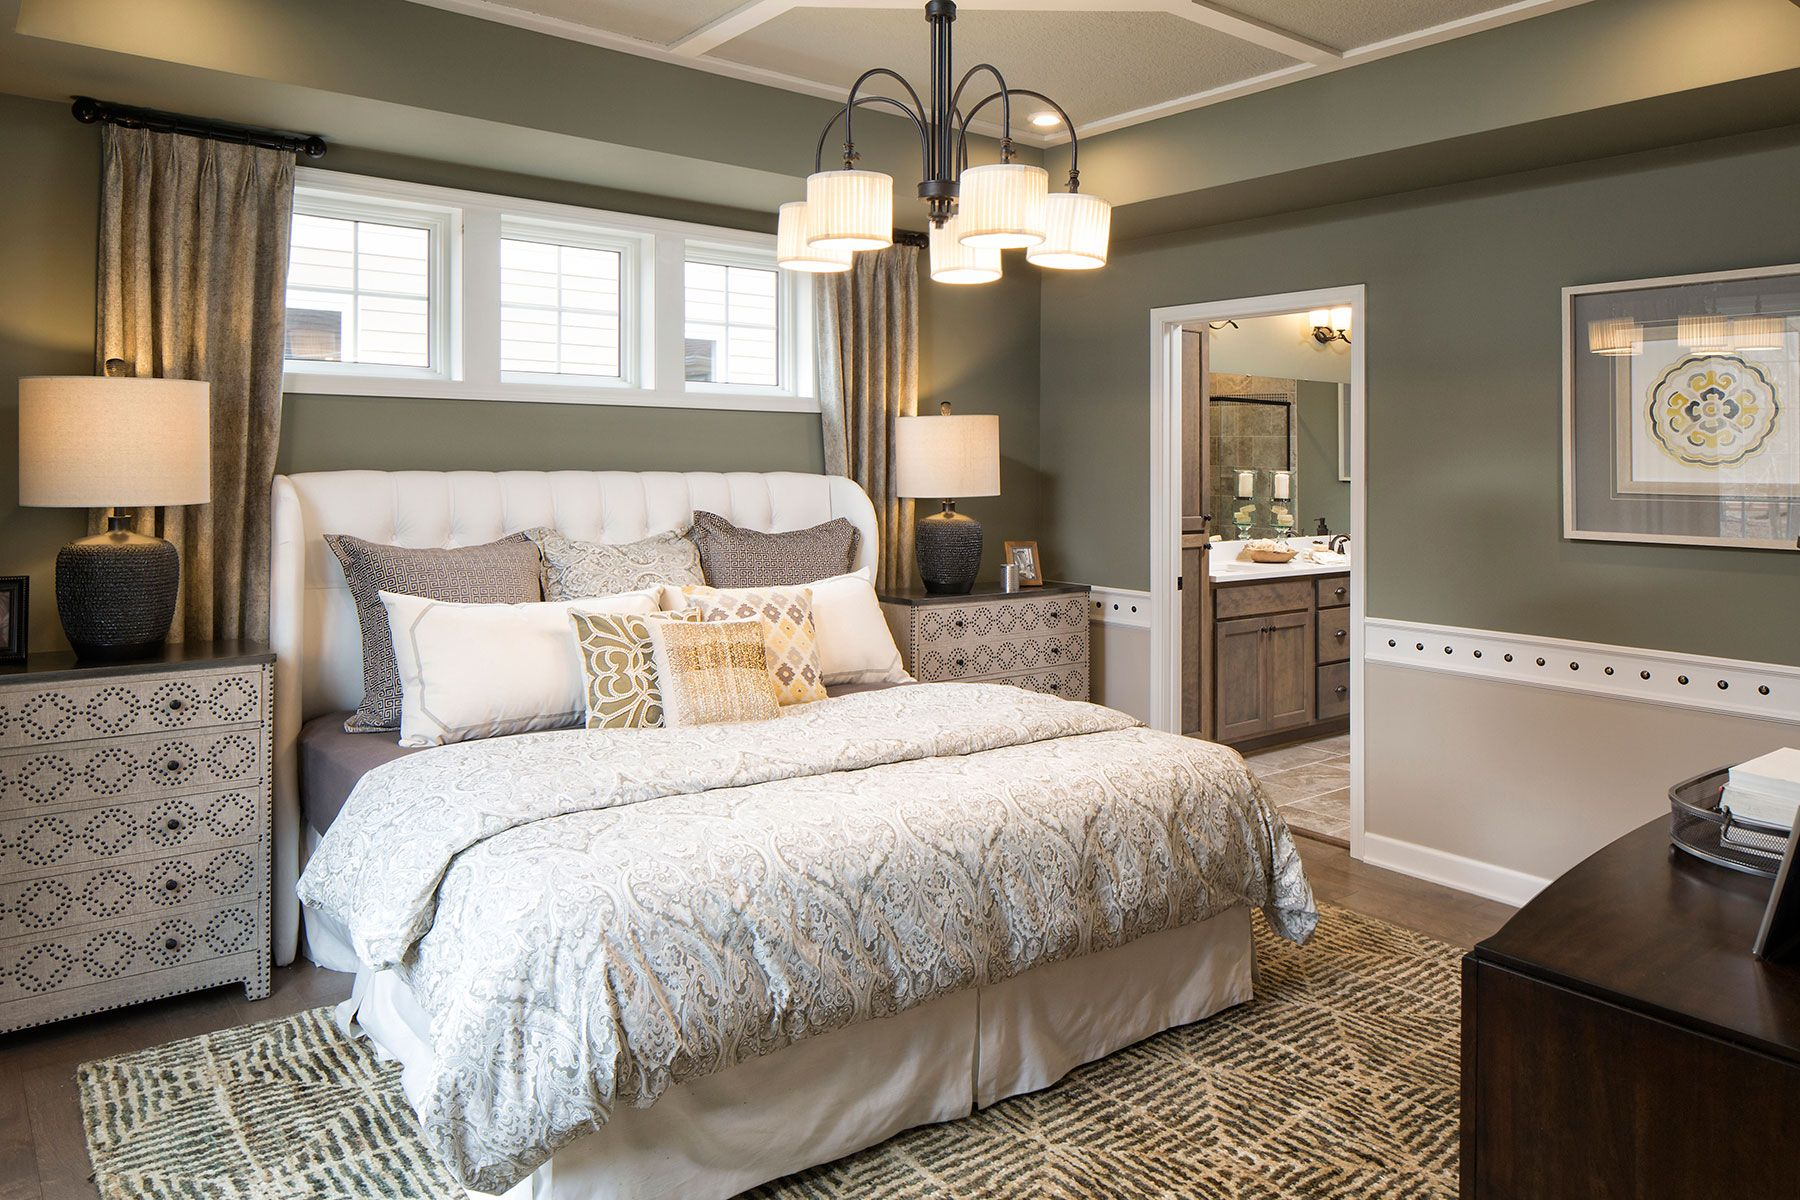 Bedroom featured in the Graystone By M/I Homes in Minneapolis-St. Paul, MN